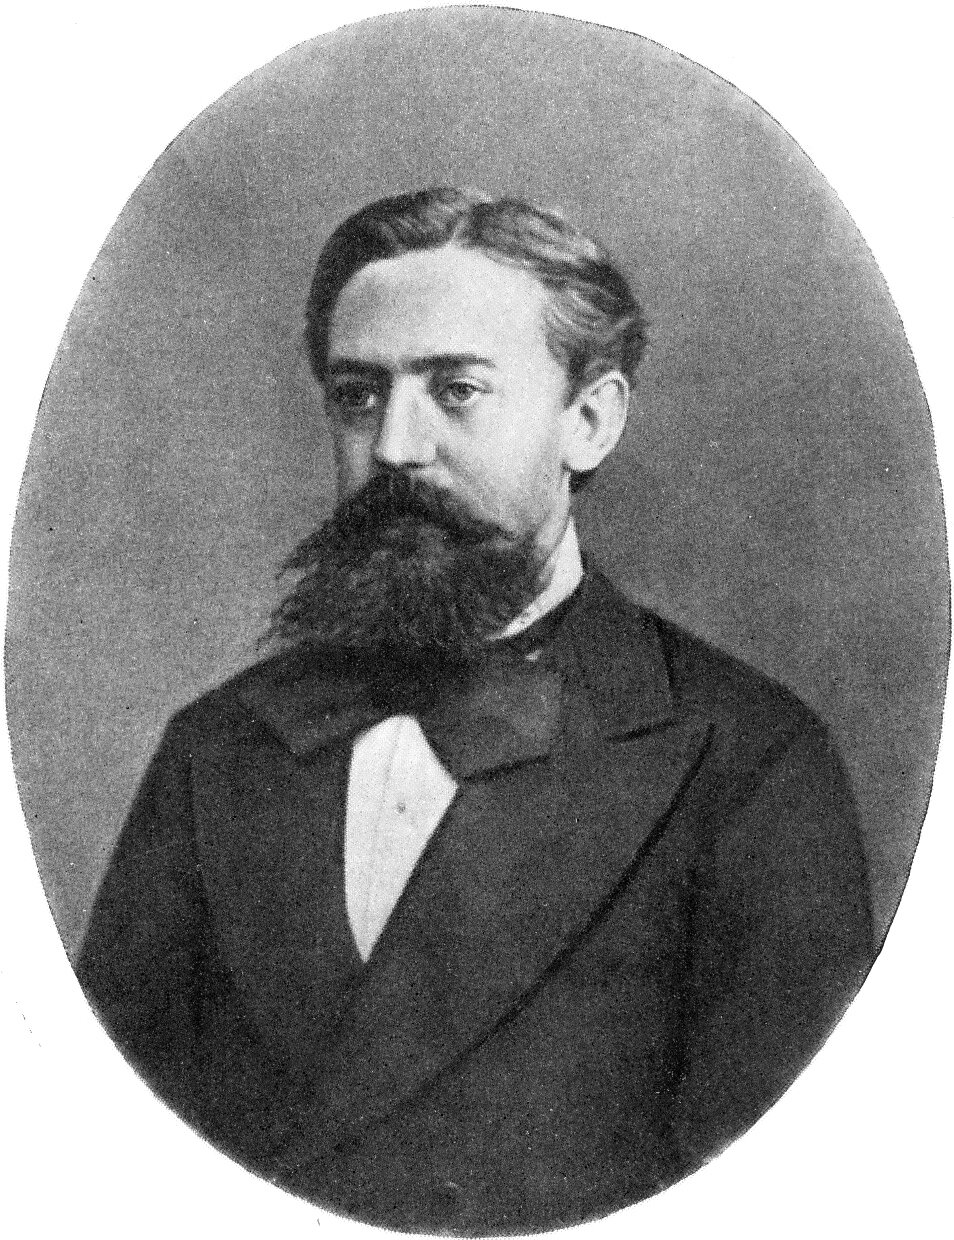 Russian math whiz and proto-hipster Andrey Markov